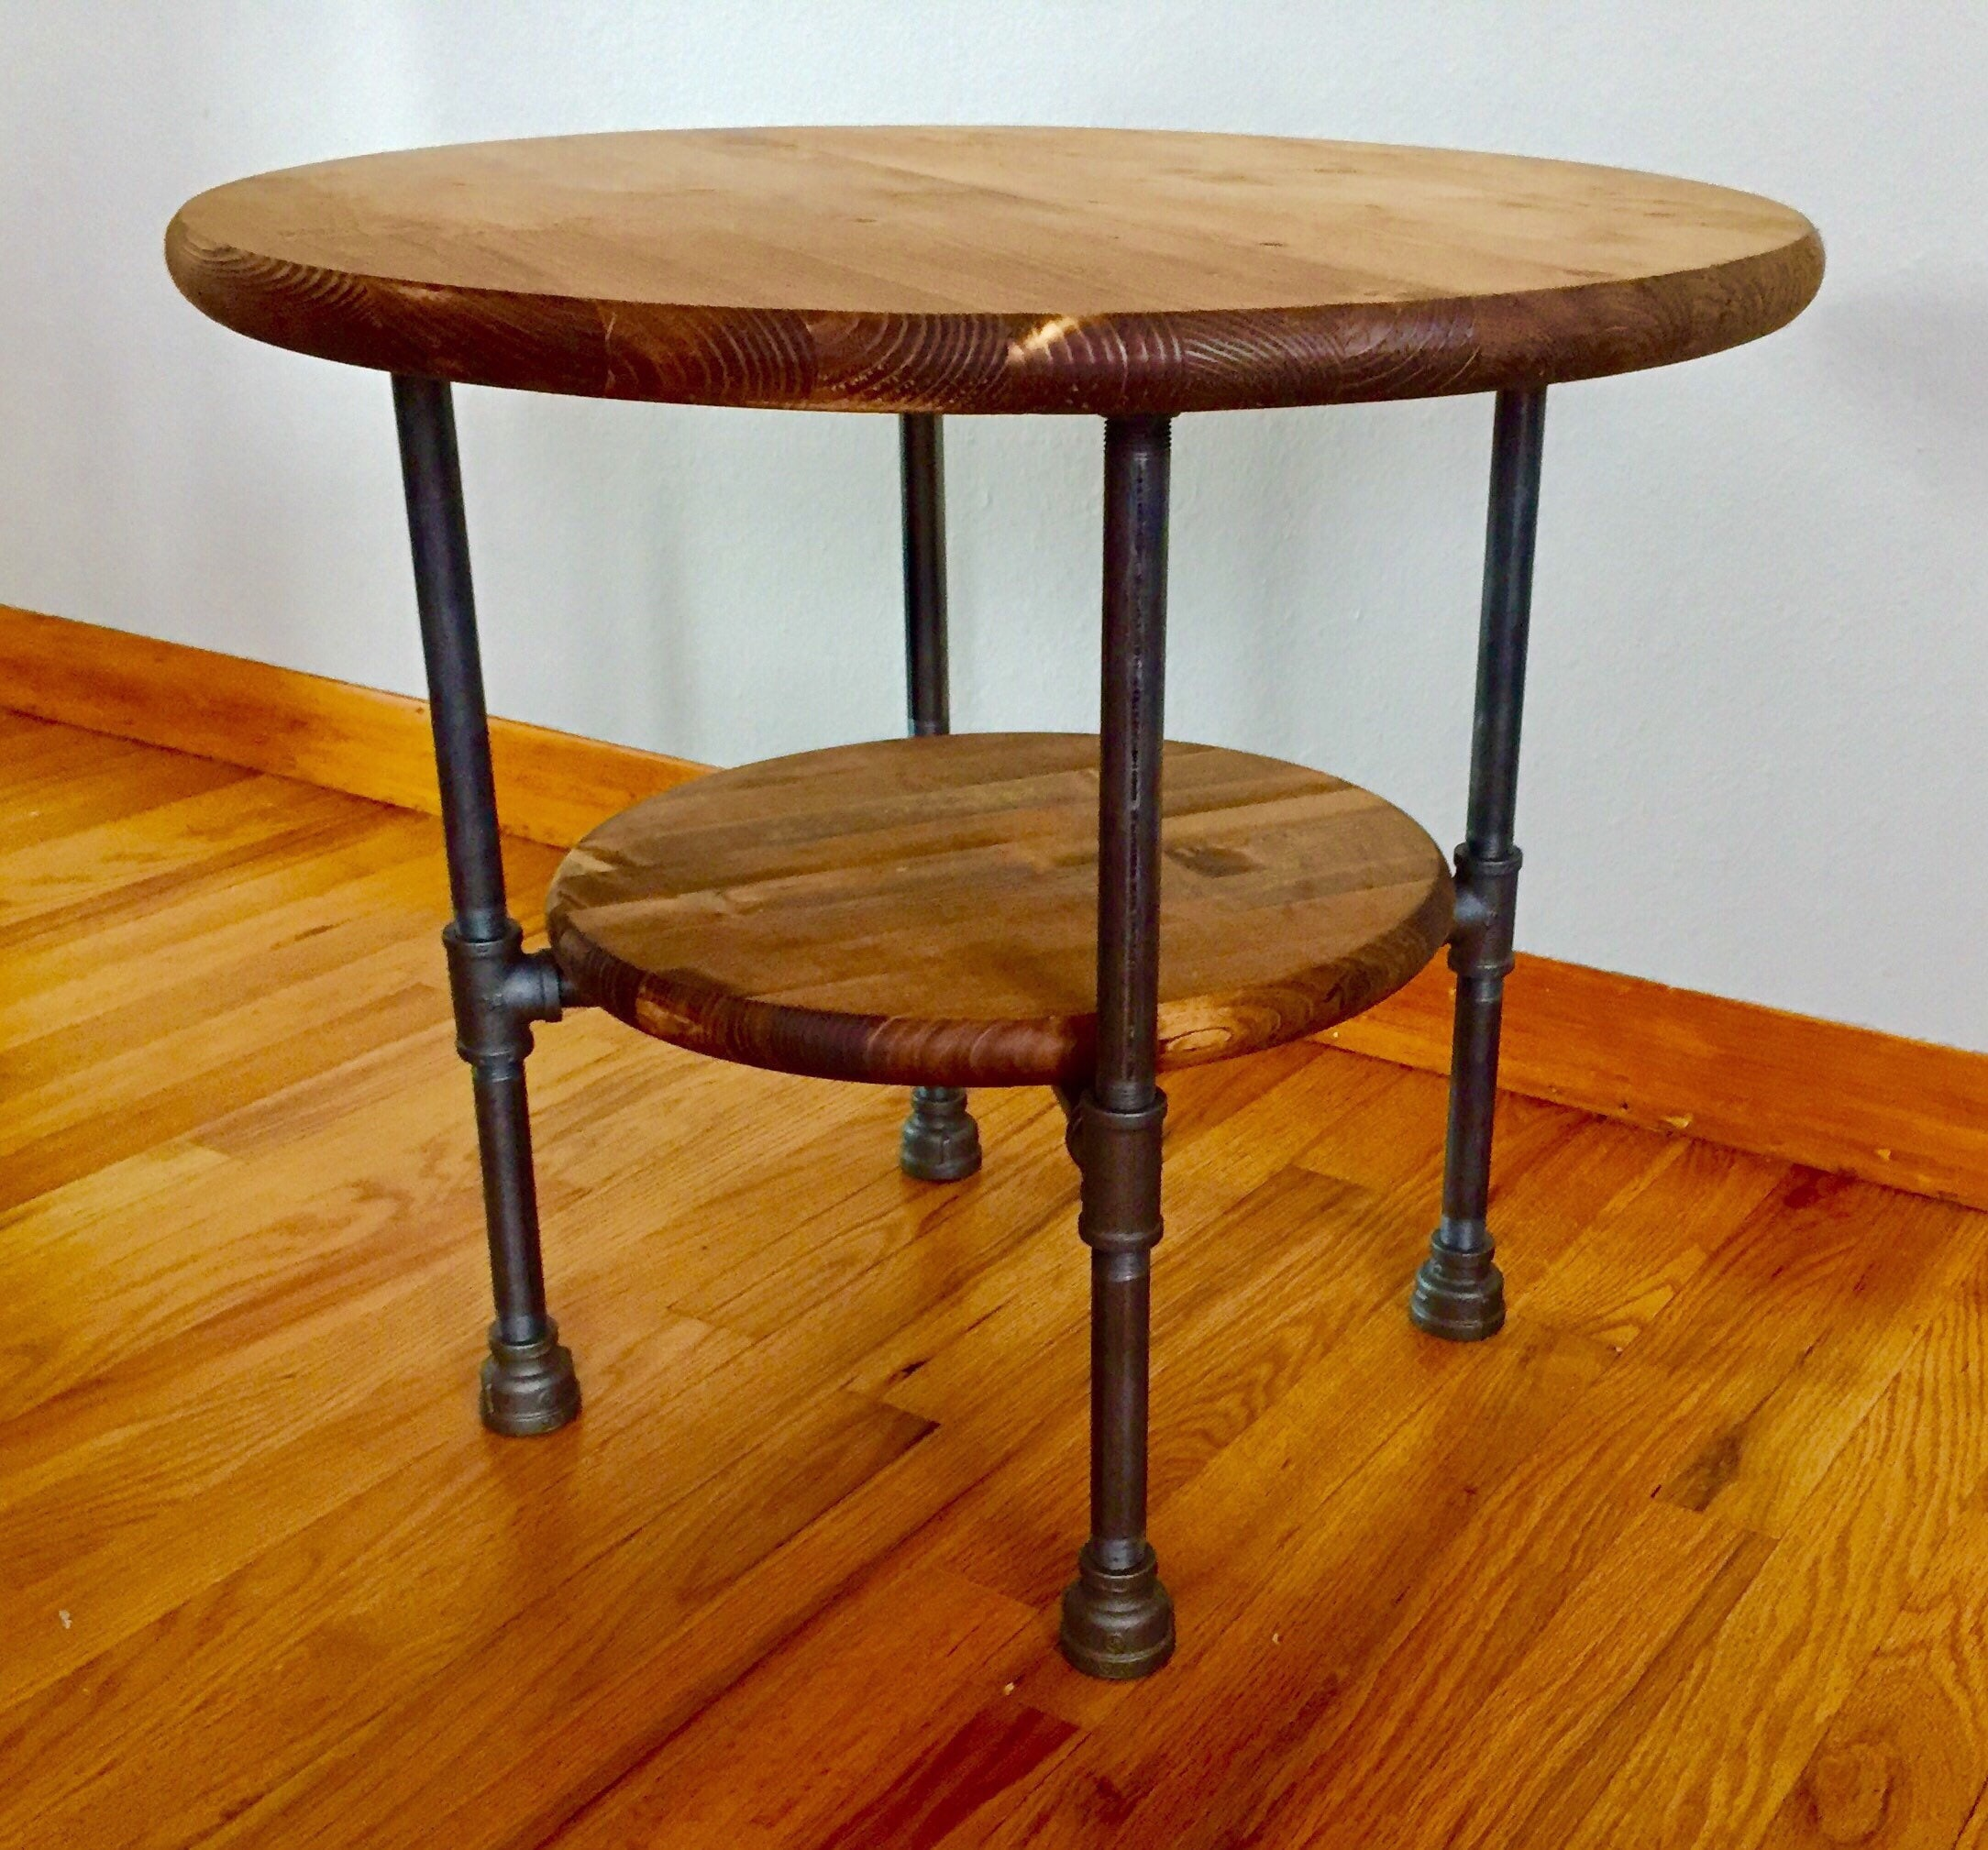 Diy Pipe Table: Black Pipe Table/Base DIY Parts Kit With Optional